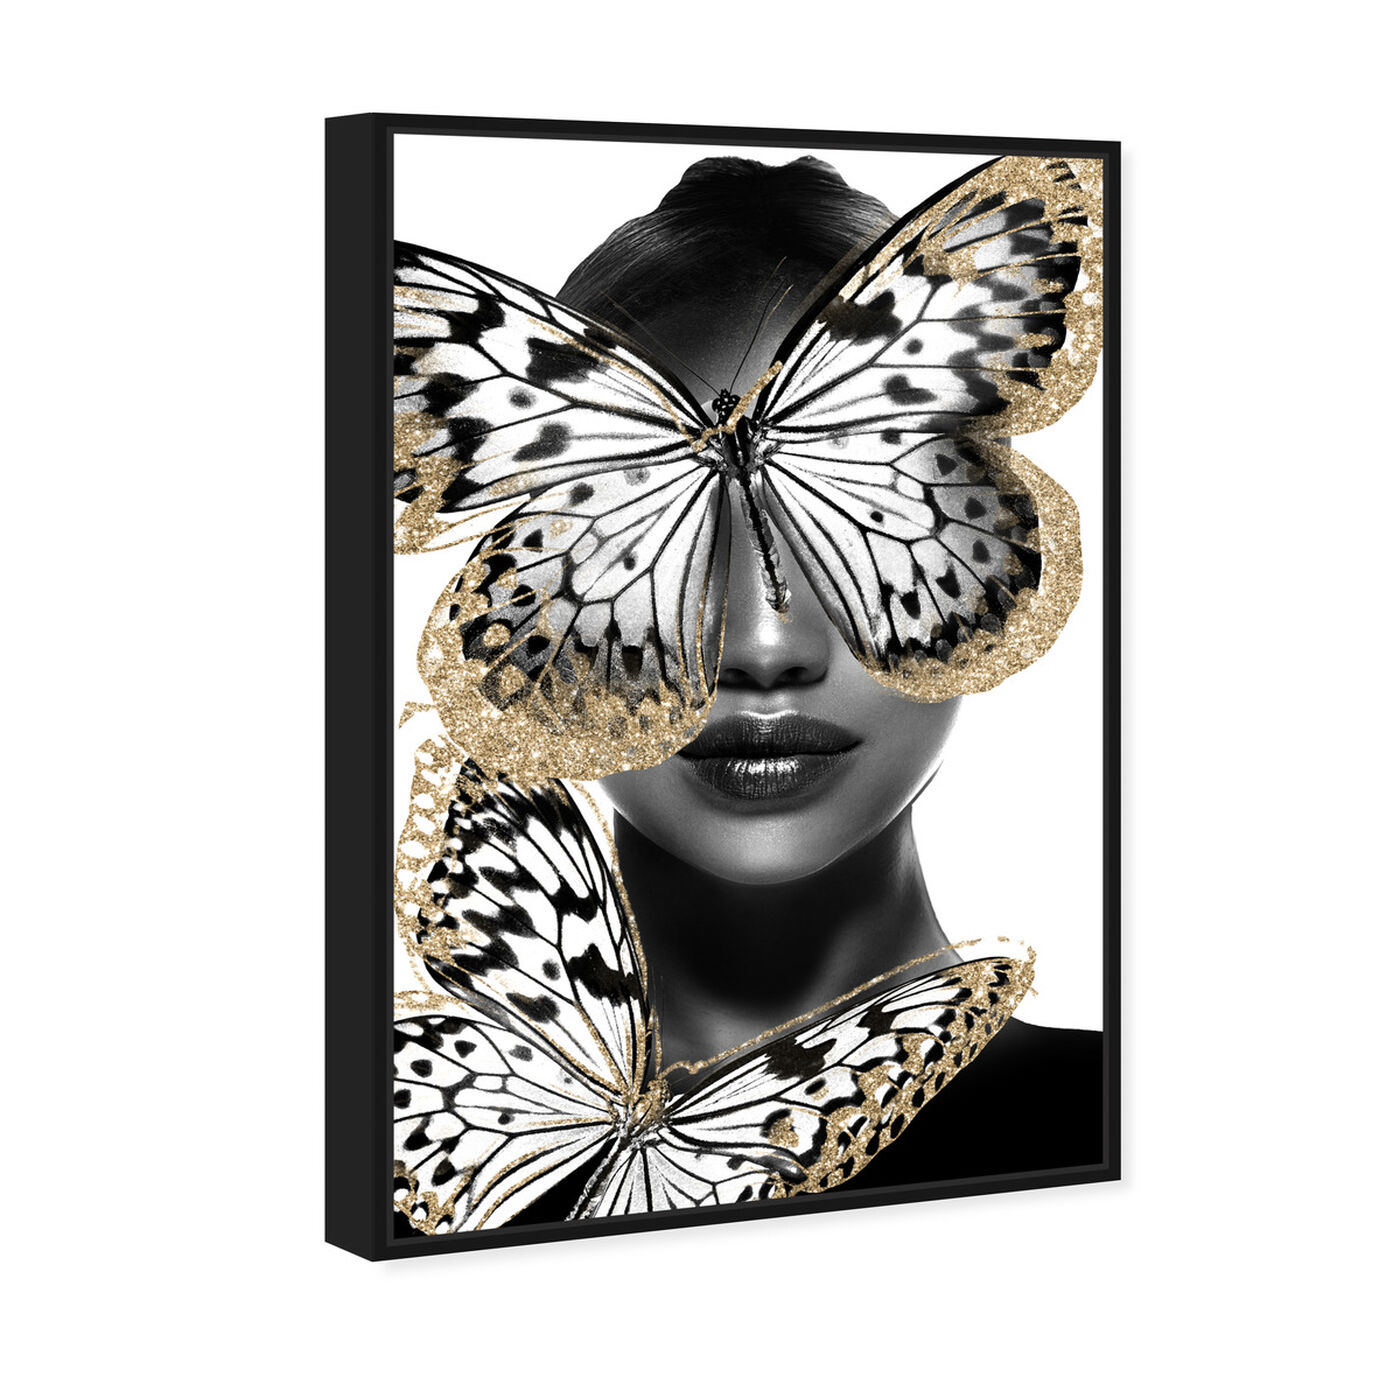 Angled view of Royalty of Wings featuring fashion and glam and portraits art.